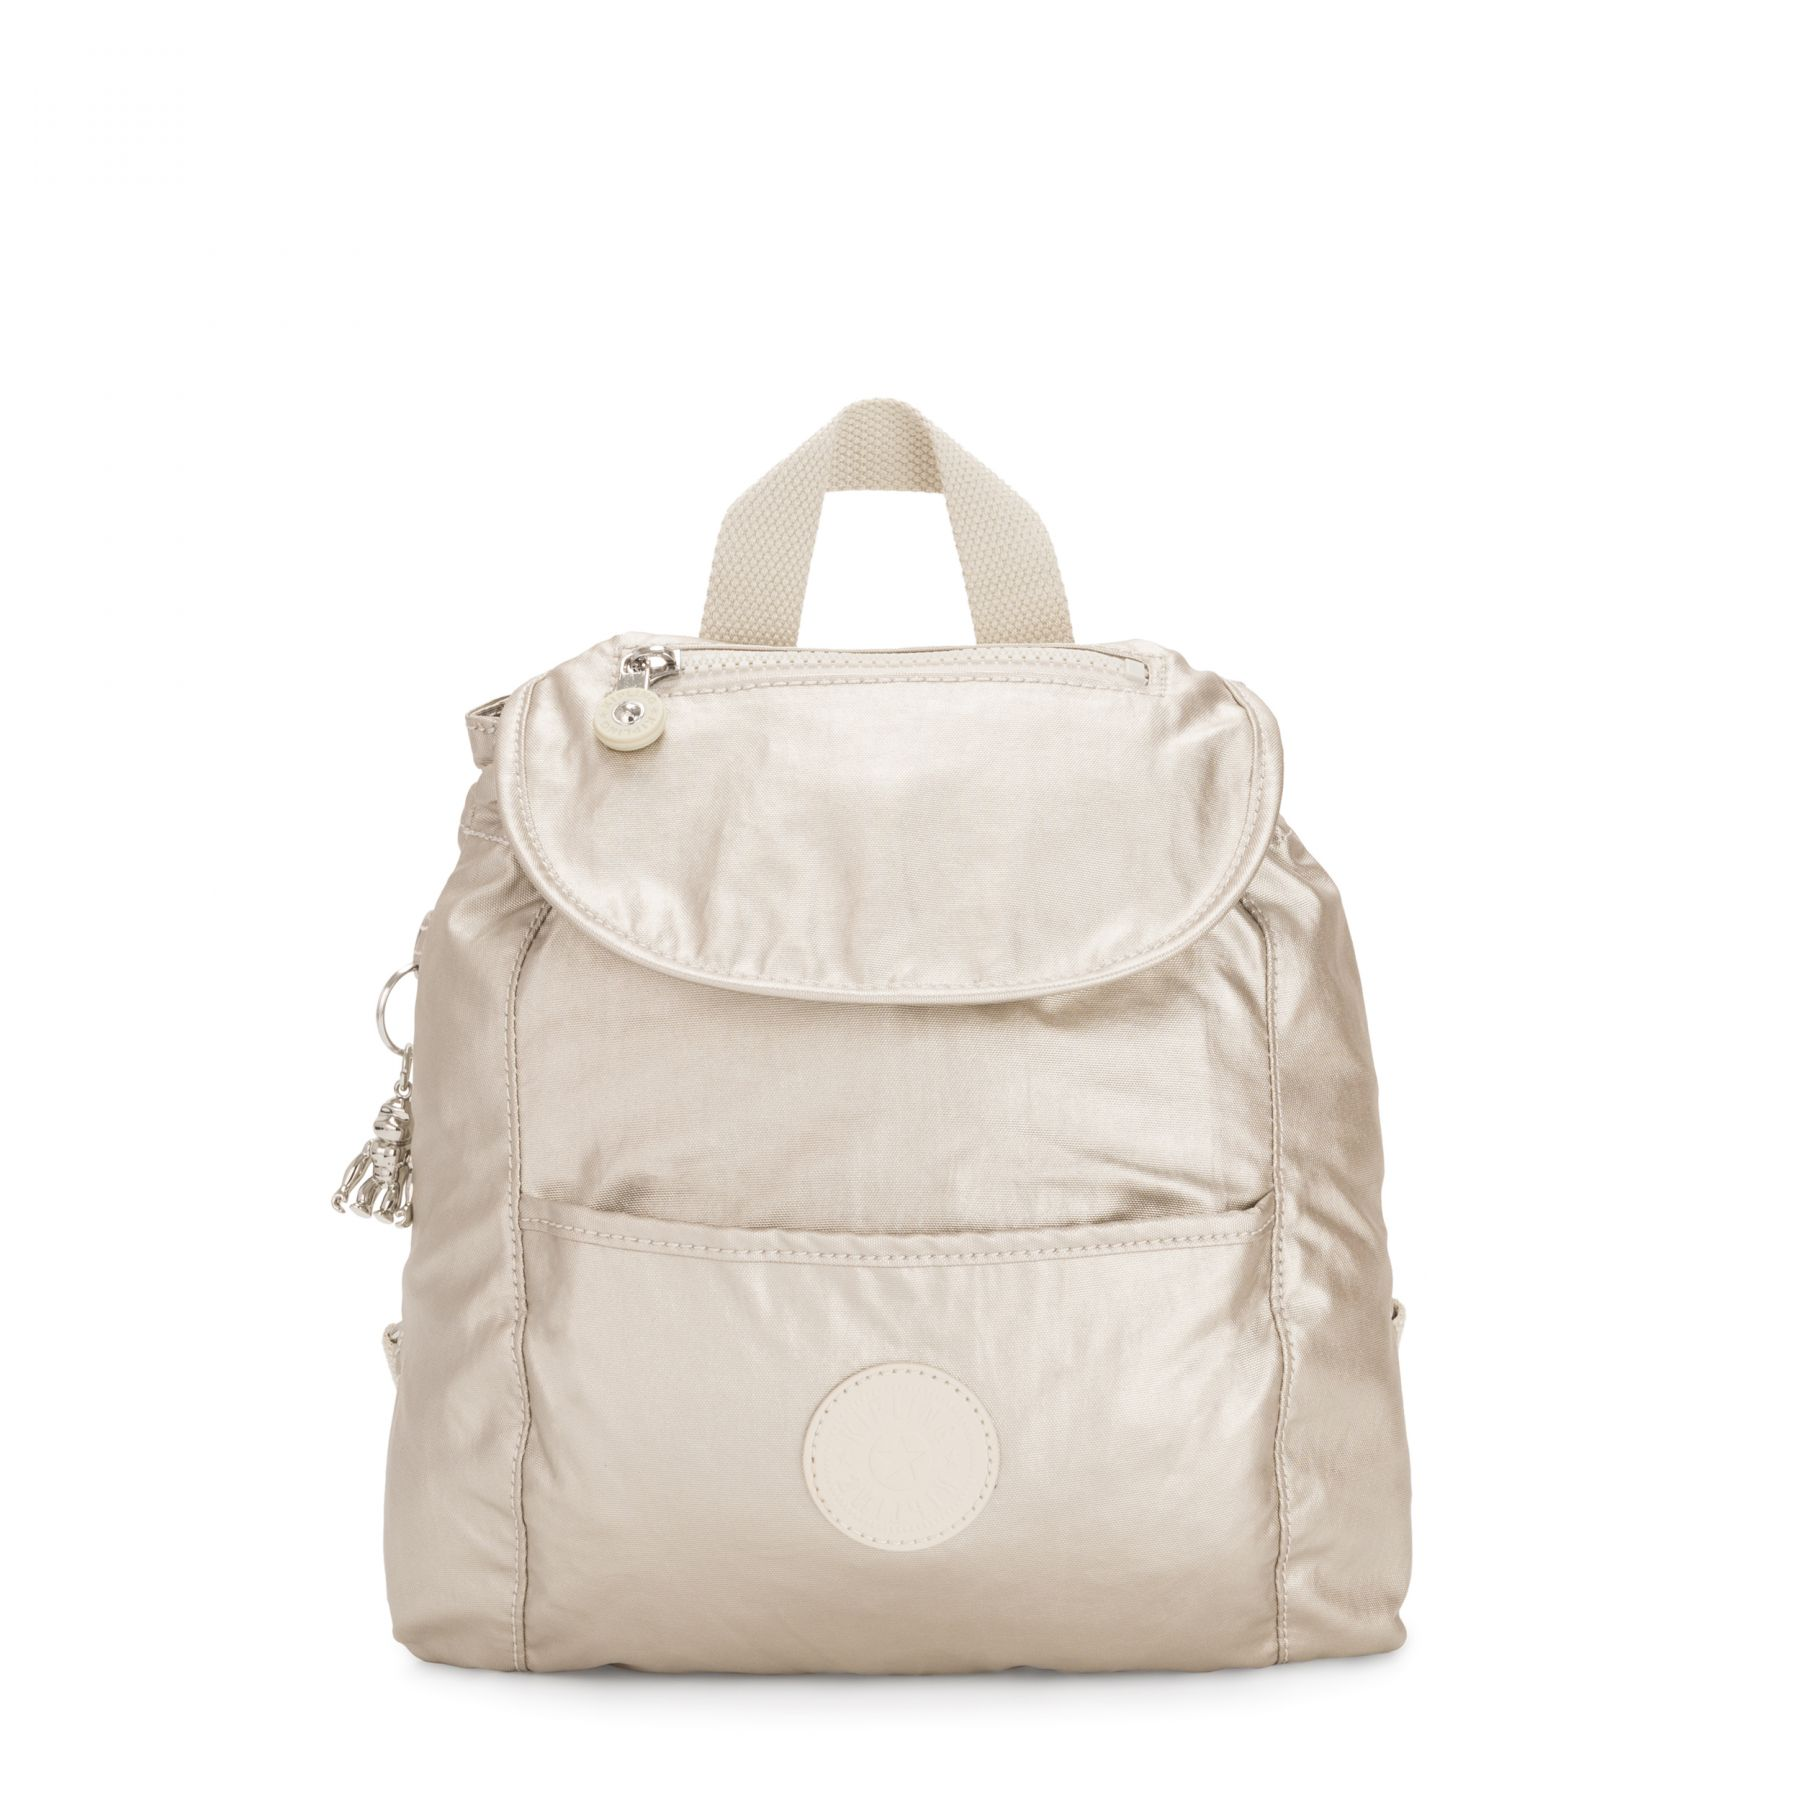 KALANI Cloud Metal by Kipling - Front view